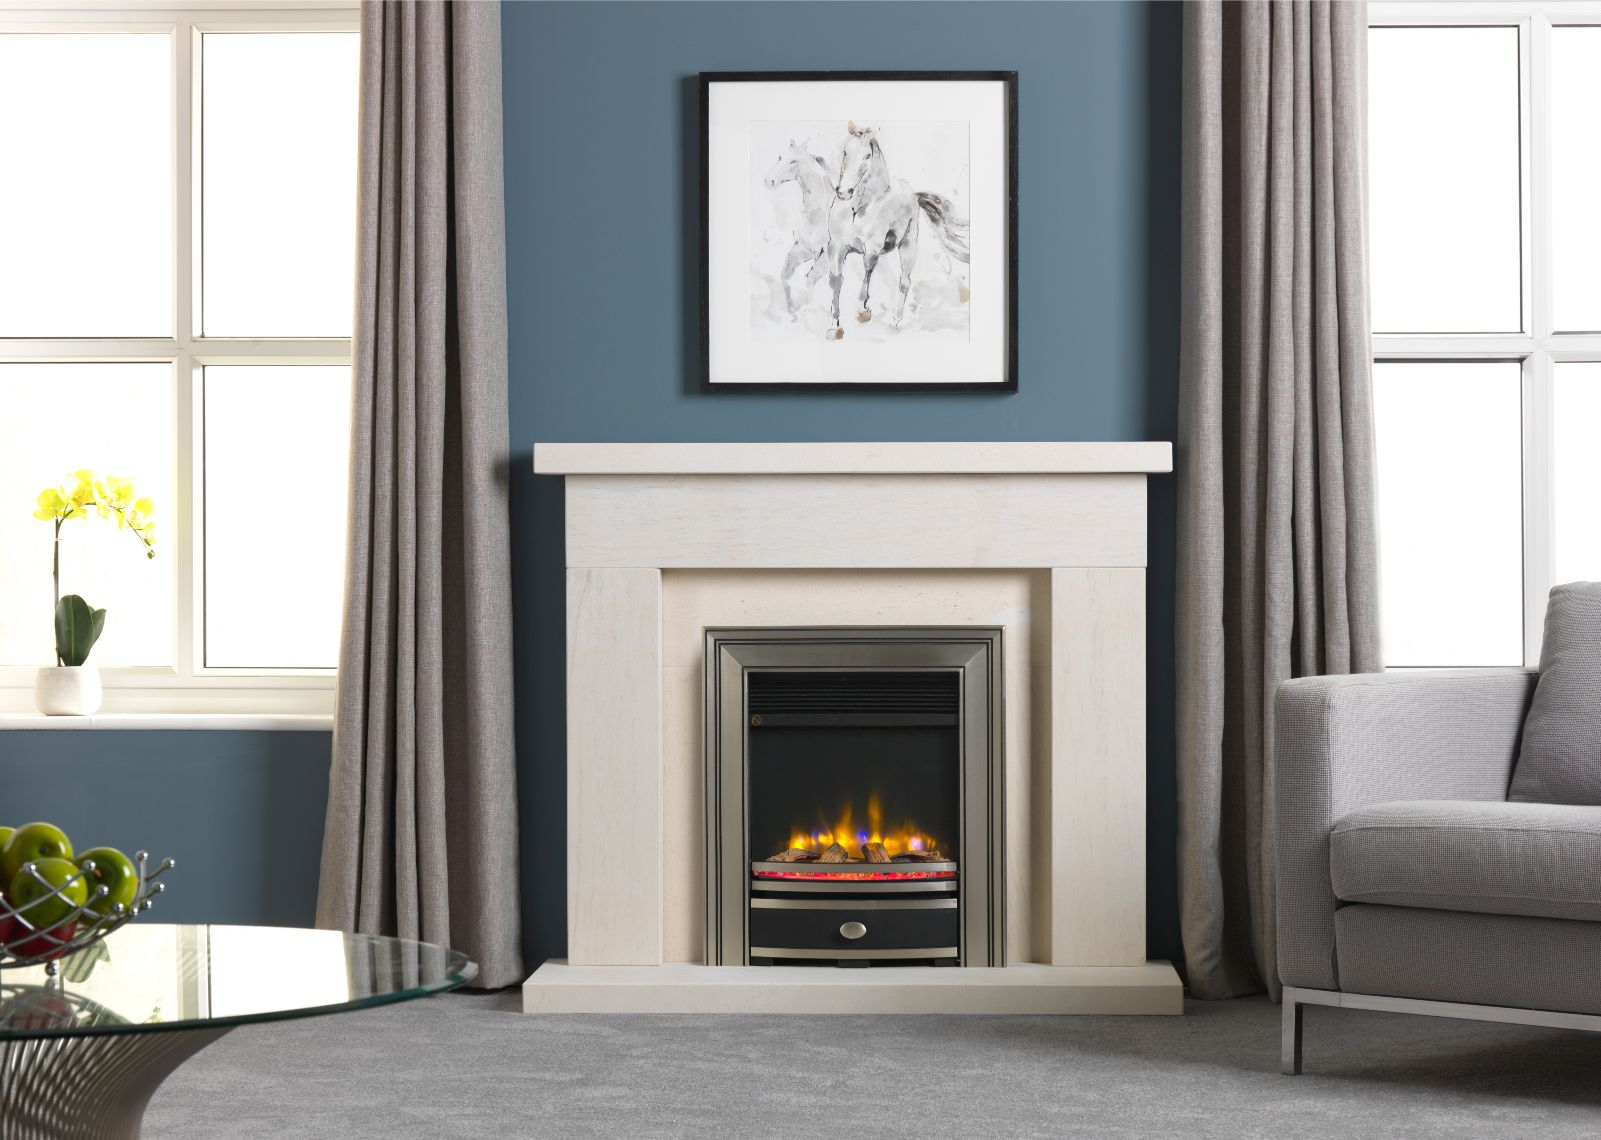 4D Ecoflame Inset Electric Fire in Electric Fireplace Surround